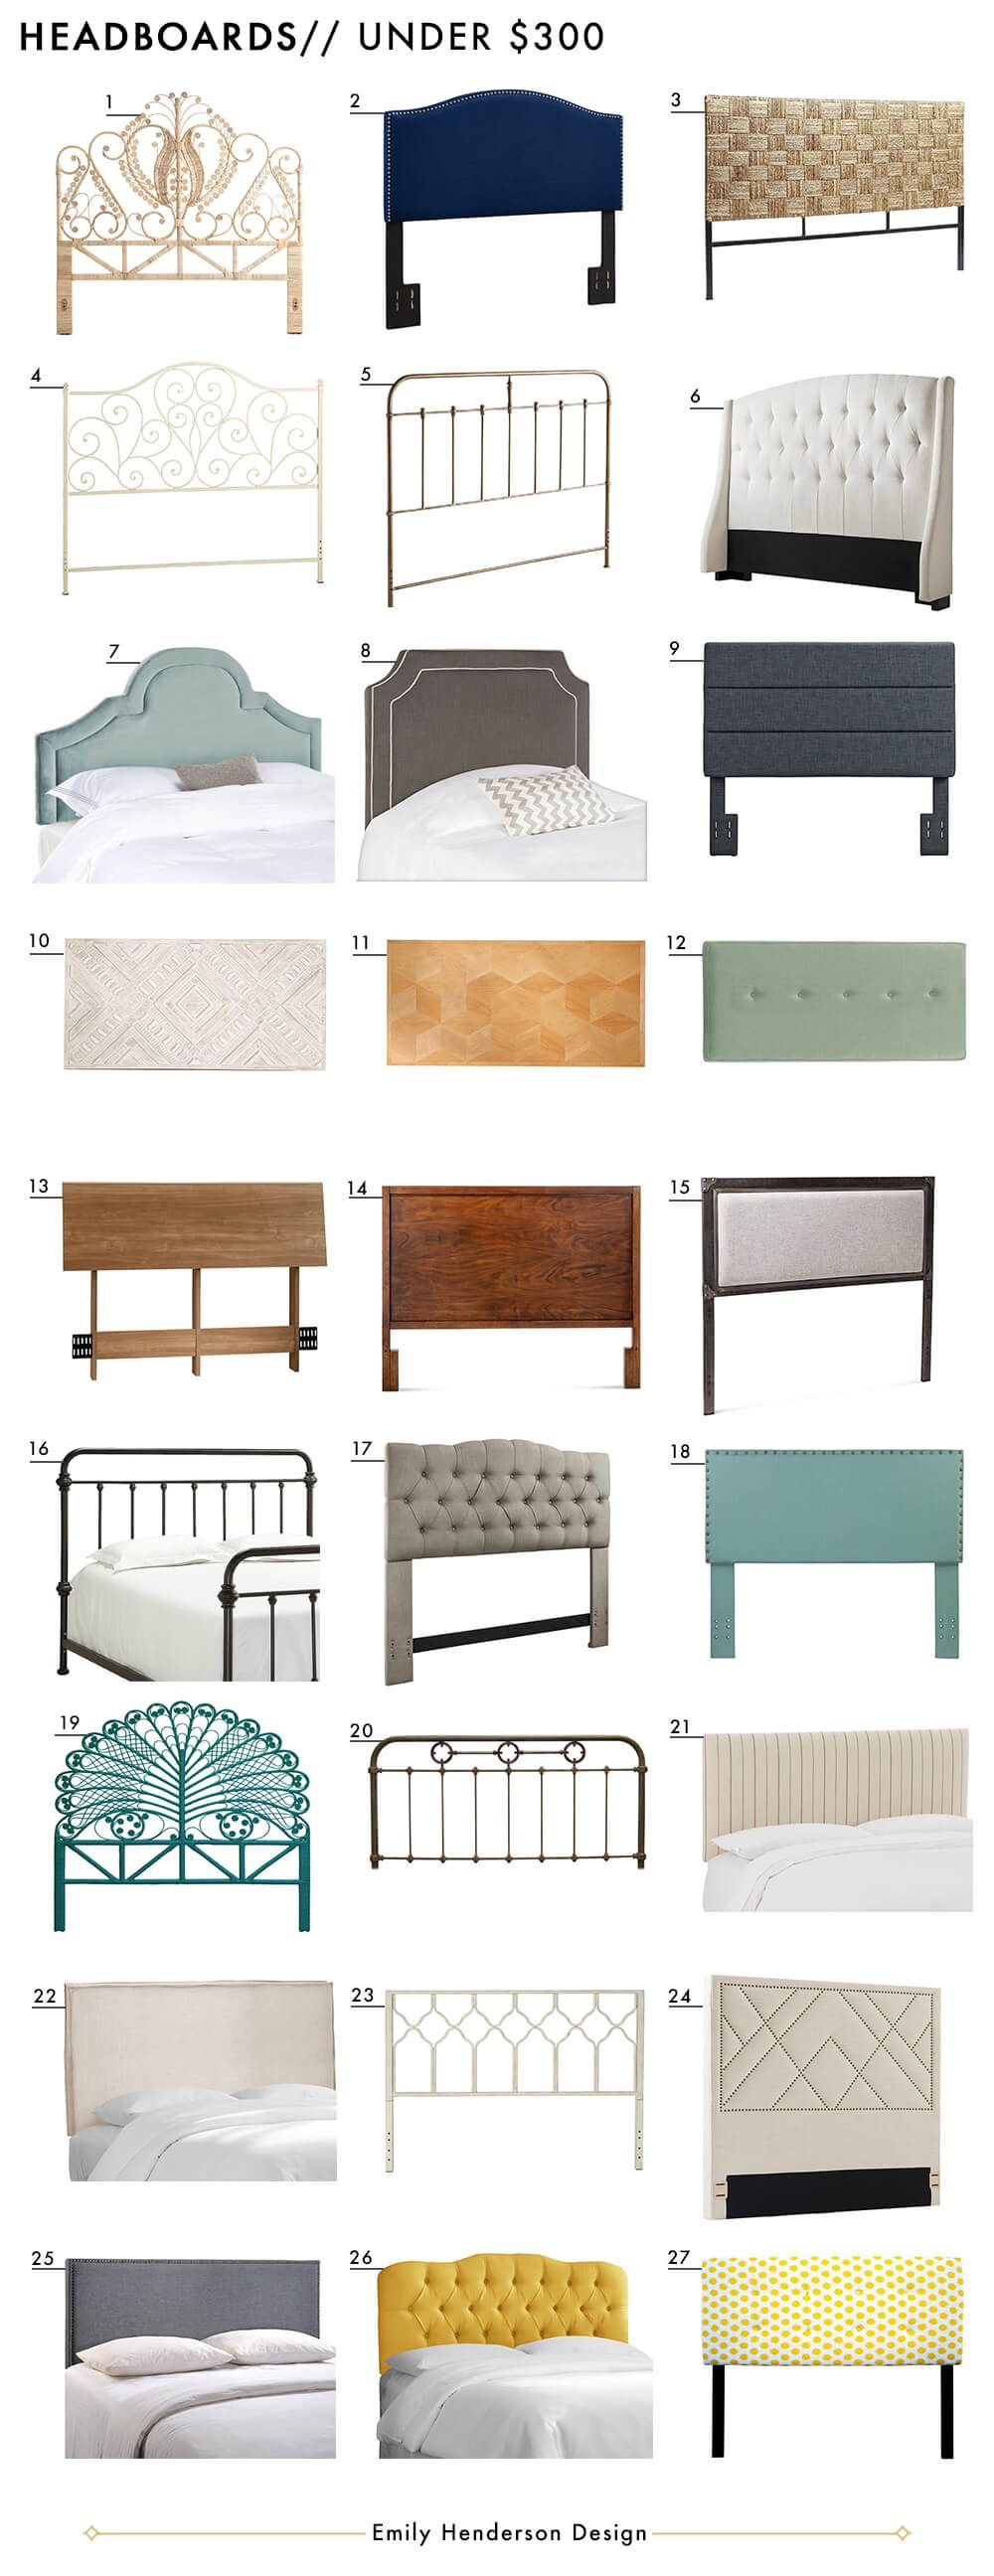 72 affordable headboards at every price point style by - Cheap bedroom furniture sets under 300 ...